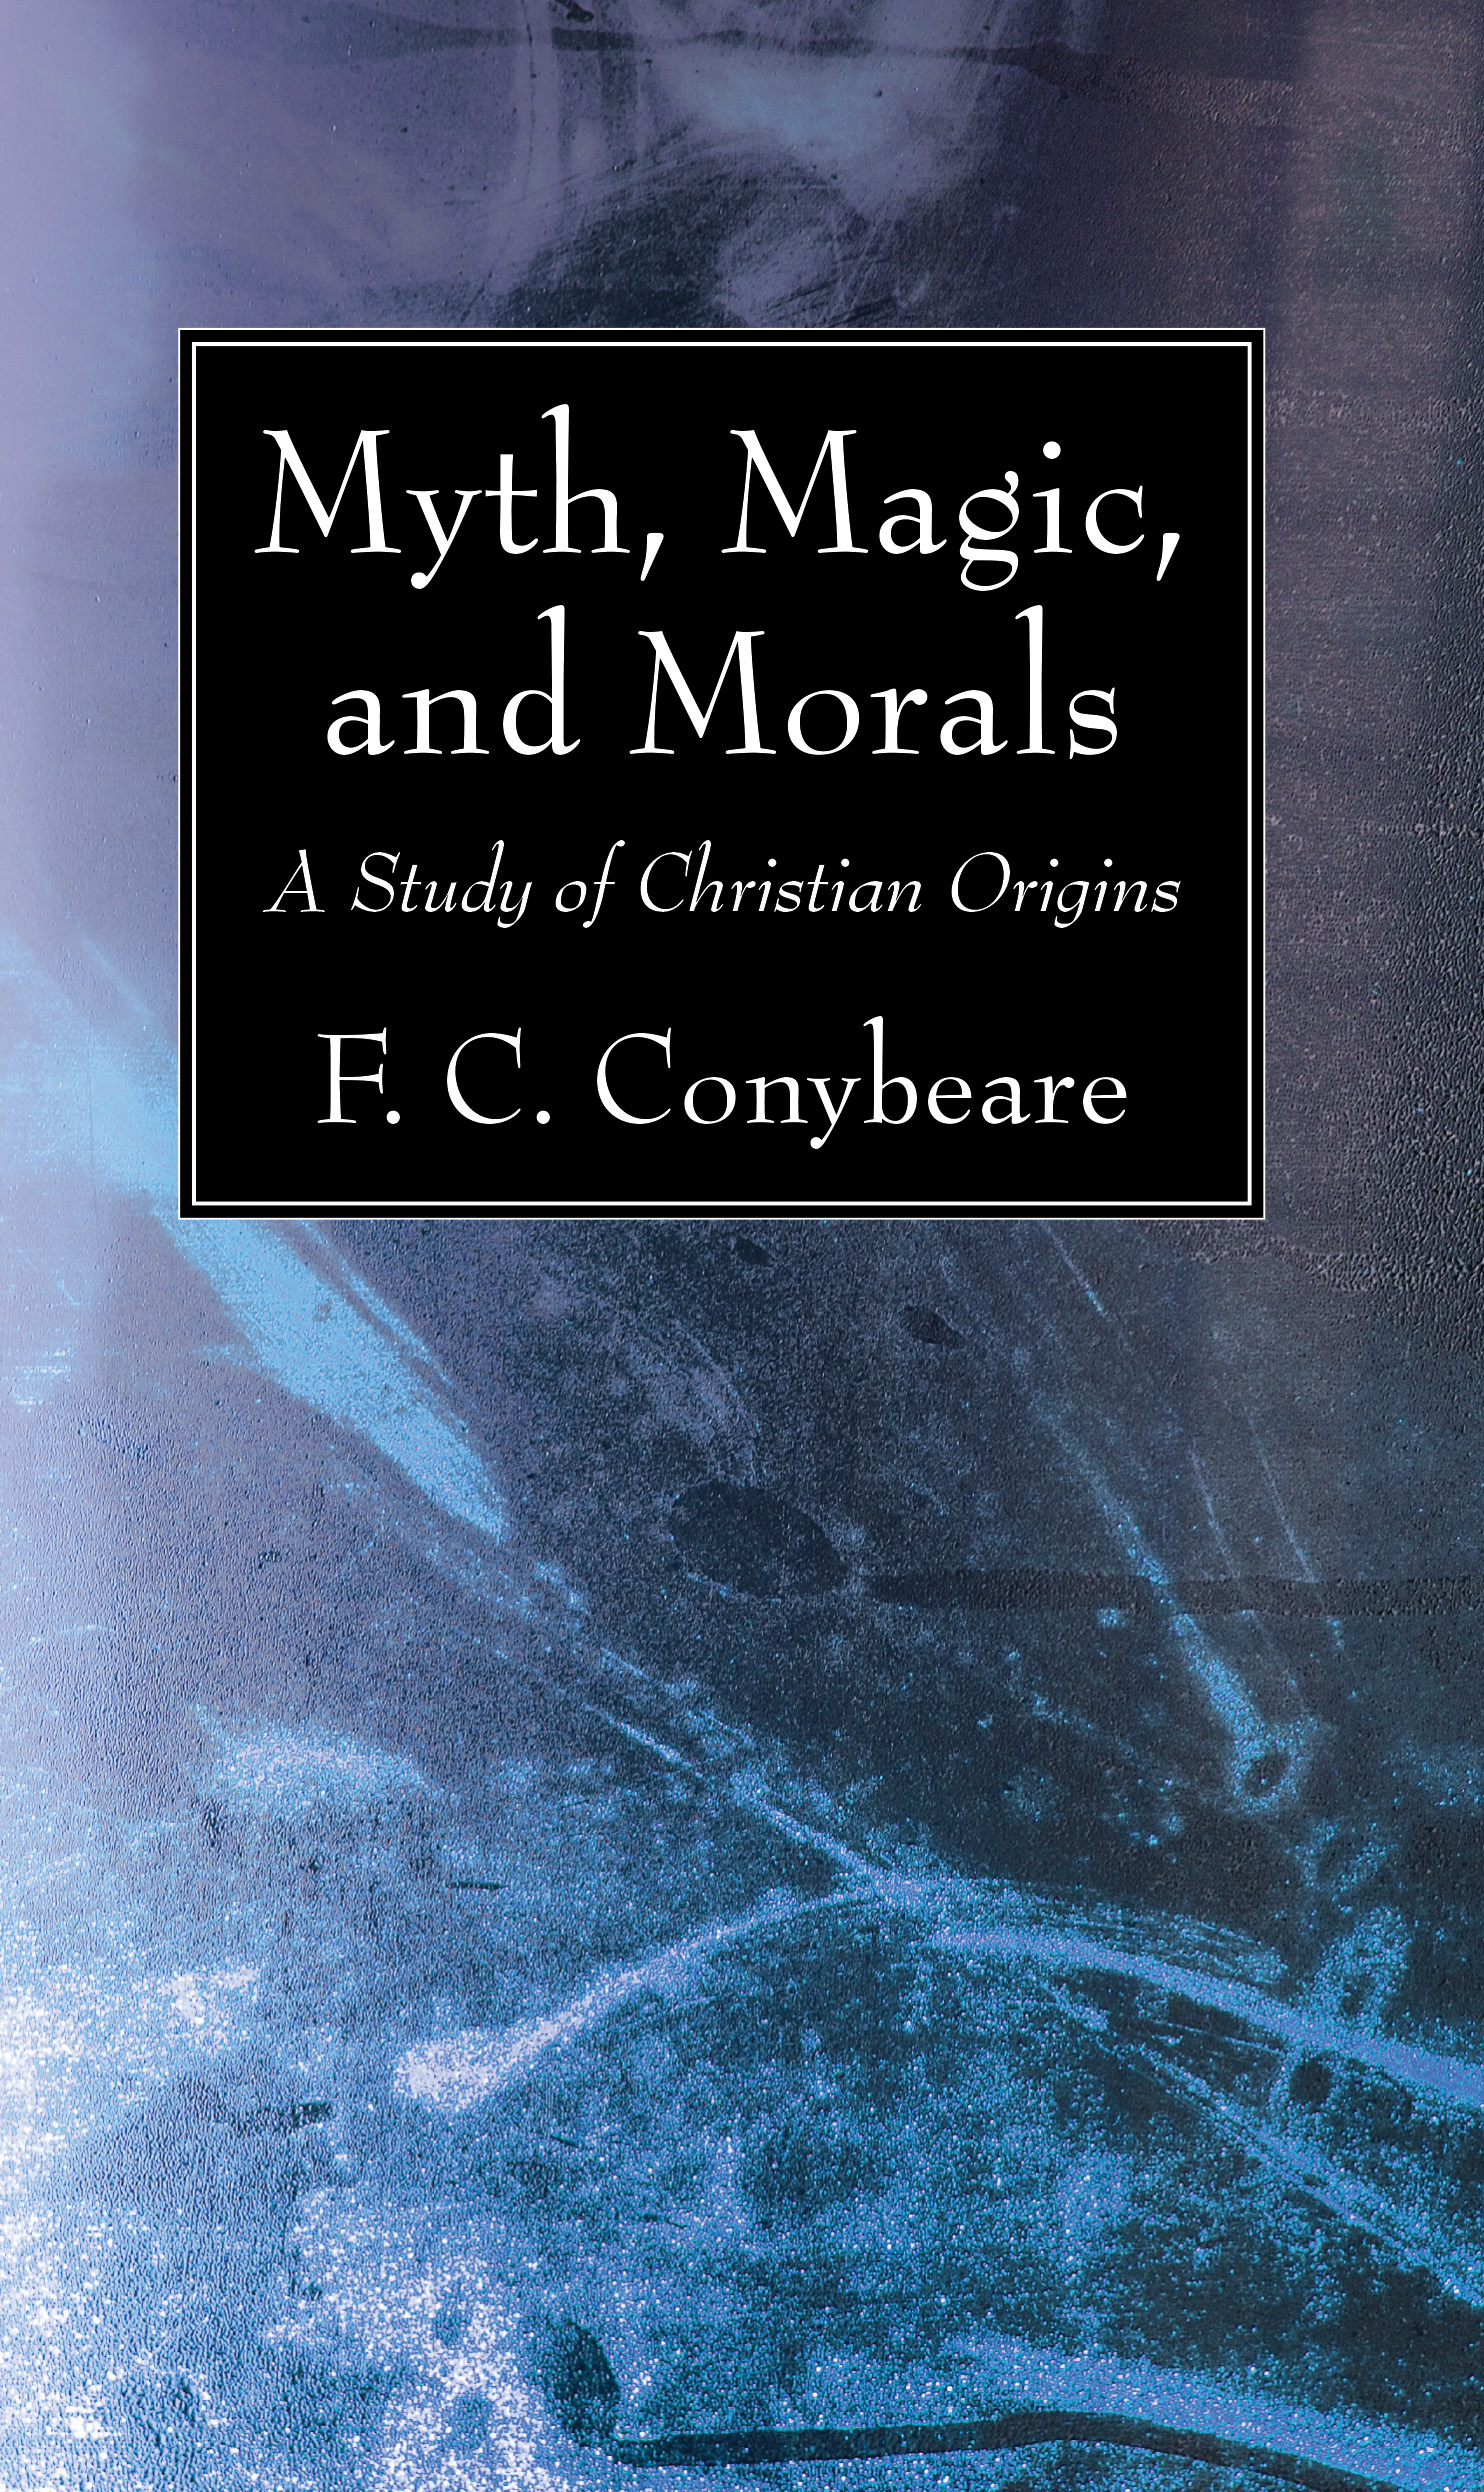 Myth, Magic, and Morals